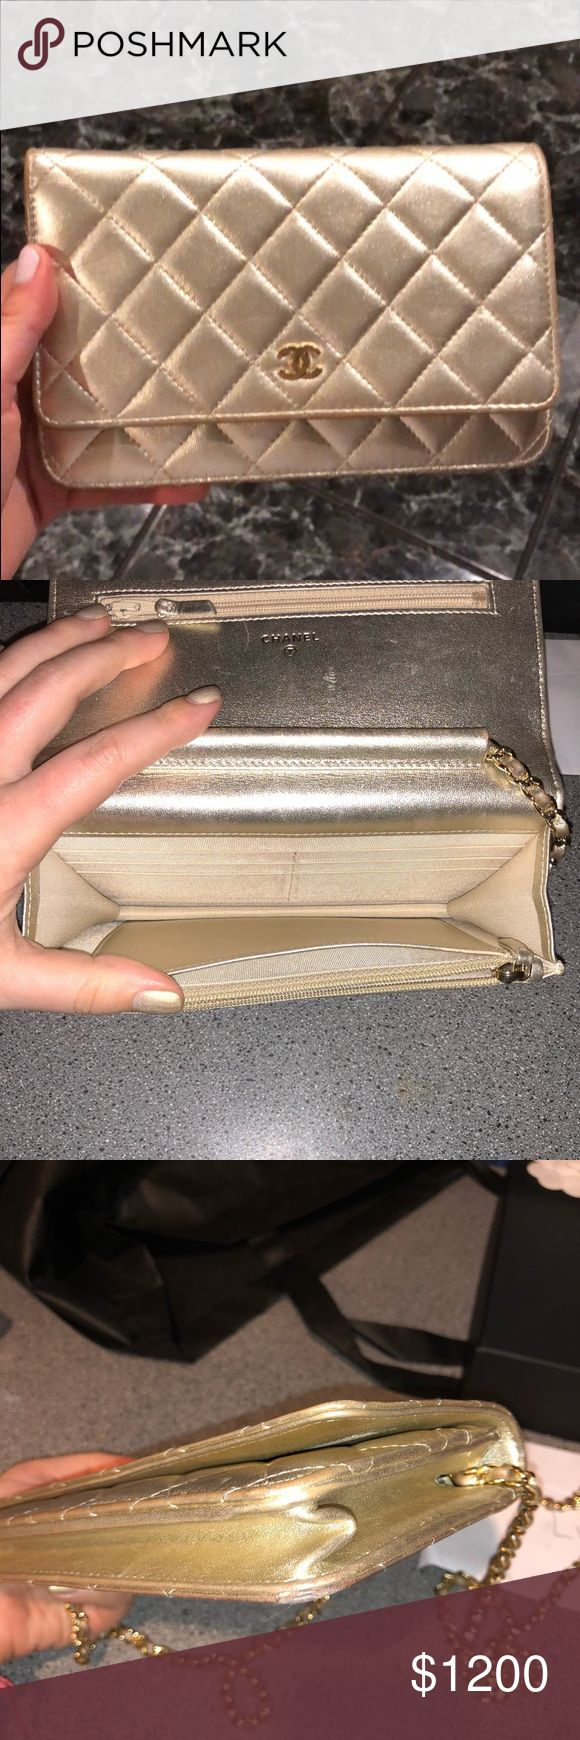 Gold 100% authentic Chanel wallet on a chain For sale is a beautiful light gold wallet on a chain. 100% authentic. Comes with box, dust cloth and authenticity card. CHANEL Bags Crossbody Bags